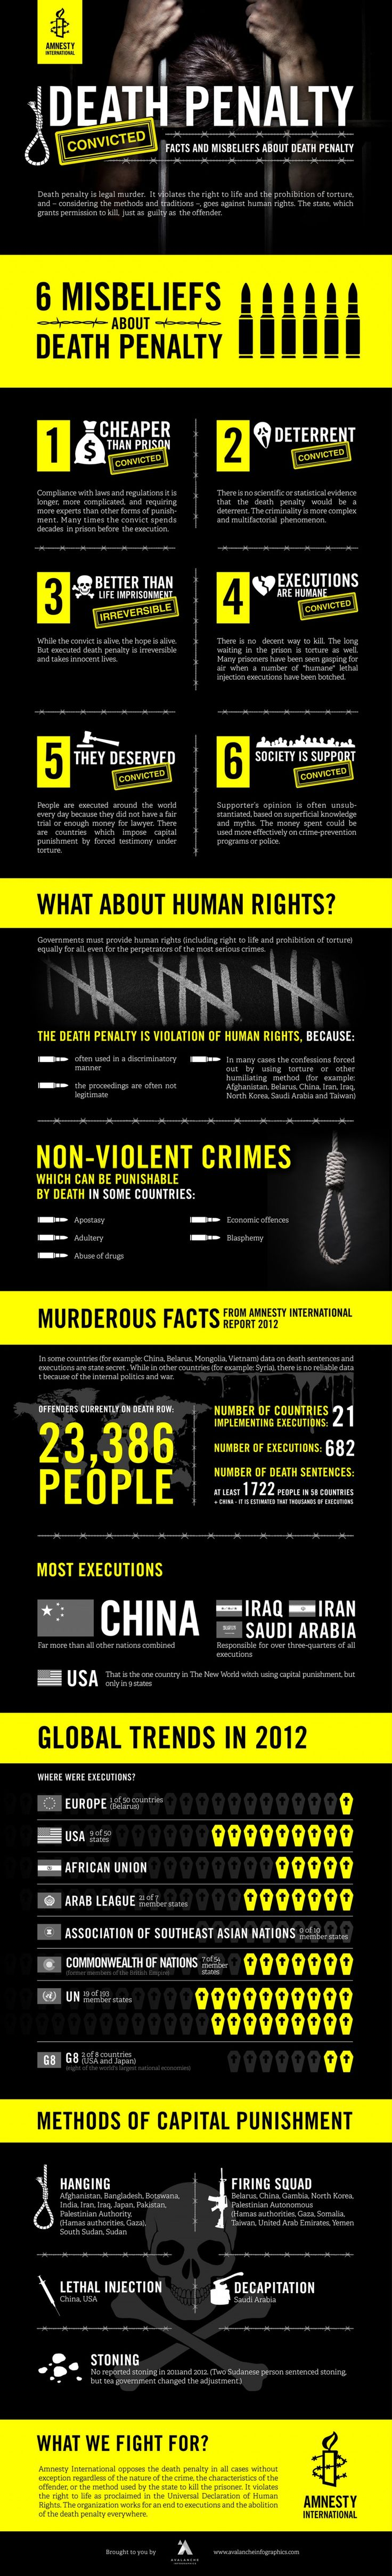 death penalty infographic infographics infographic  death penalty infographic